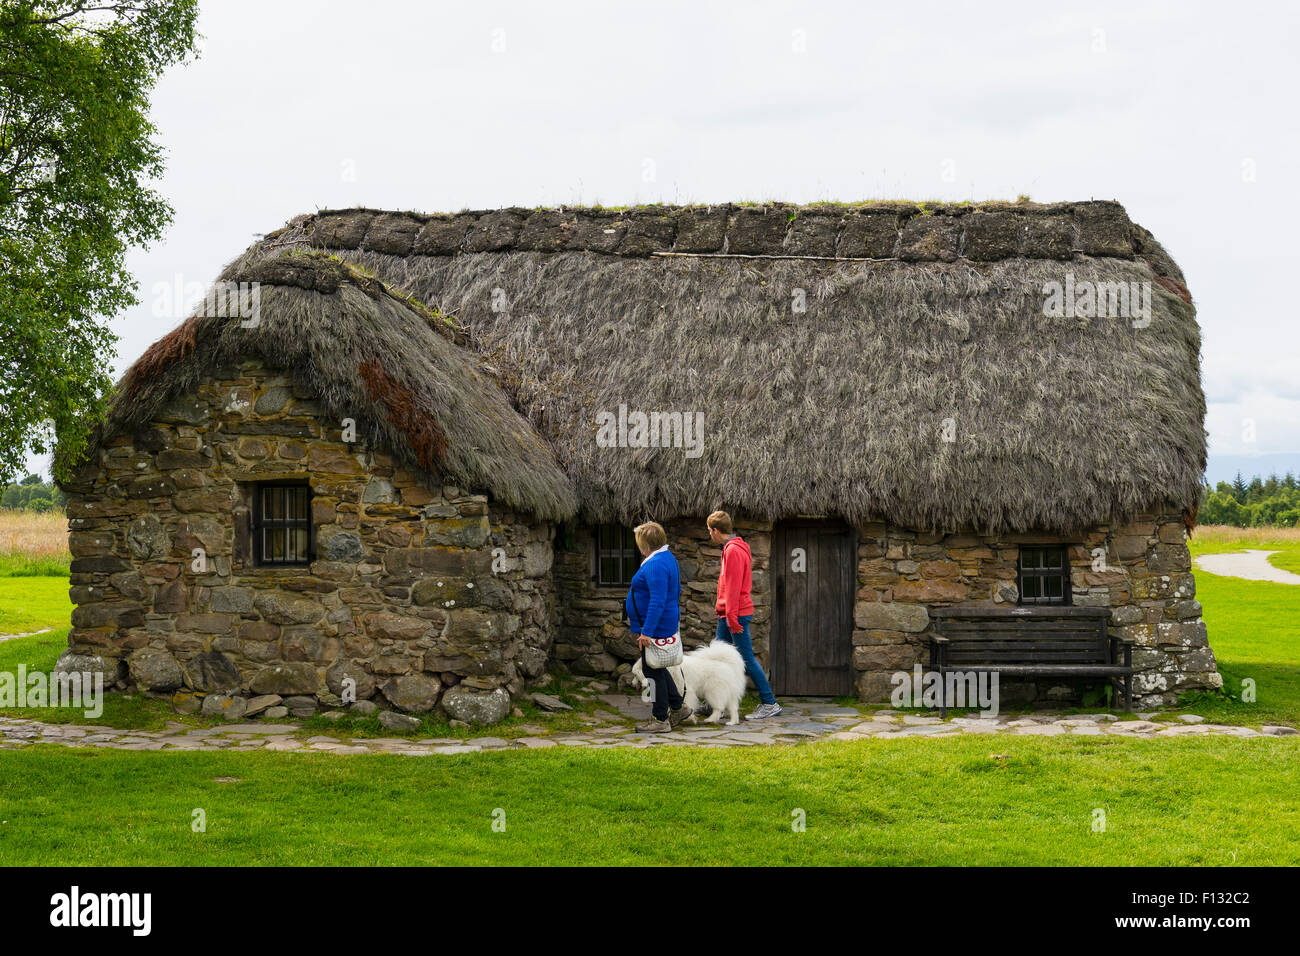 Old Leanach Cottage at National Trust for Scotland  Culloden Moor battlefield in Highland, Scotland. - Stock Image